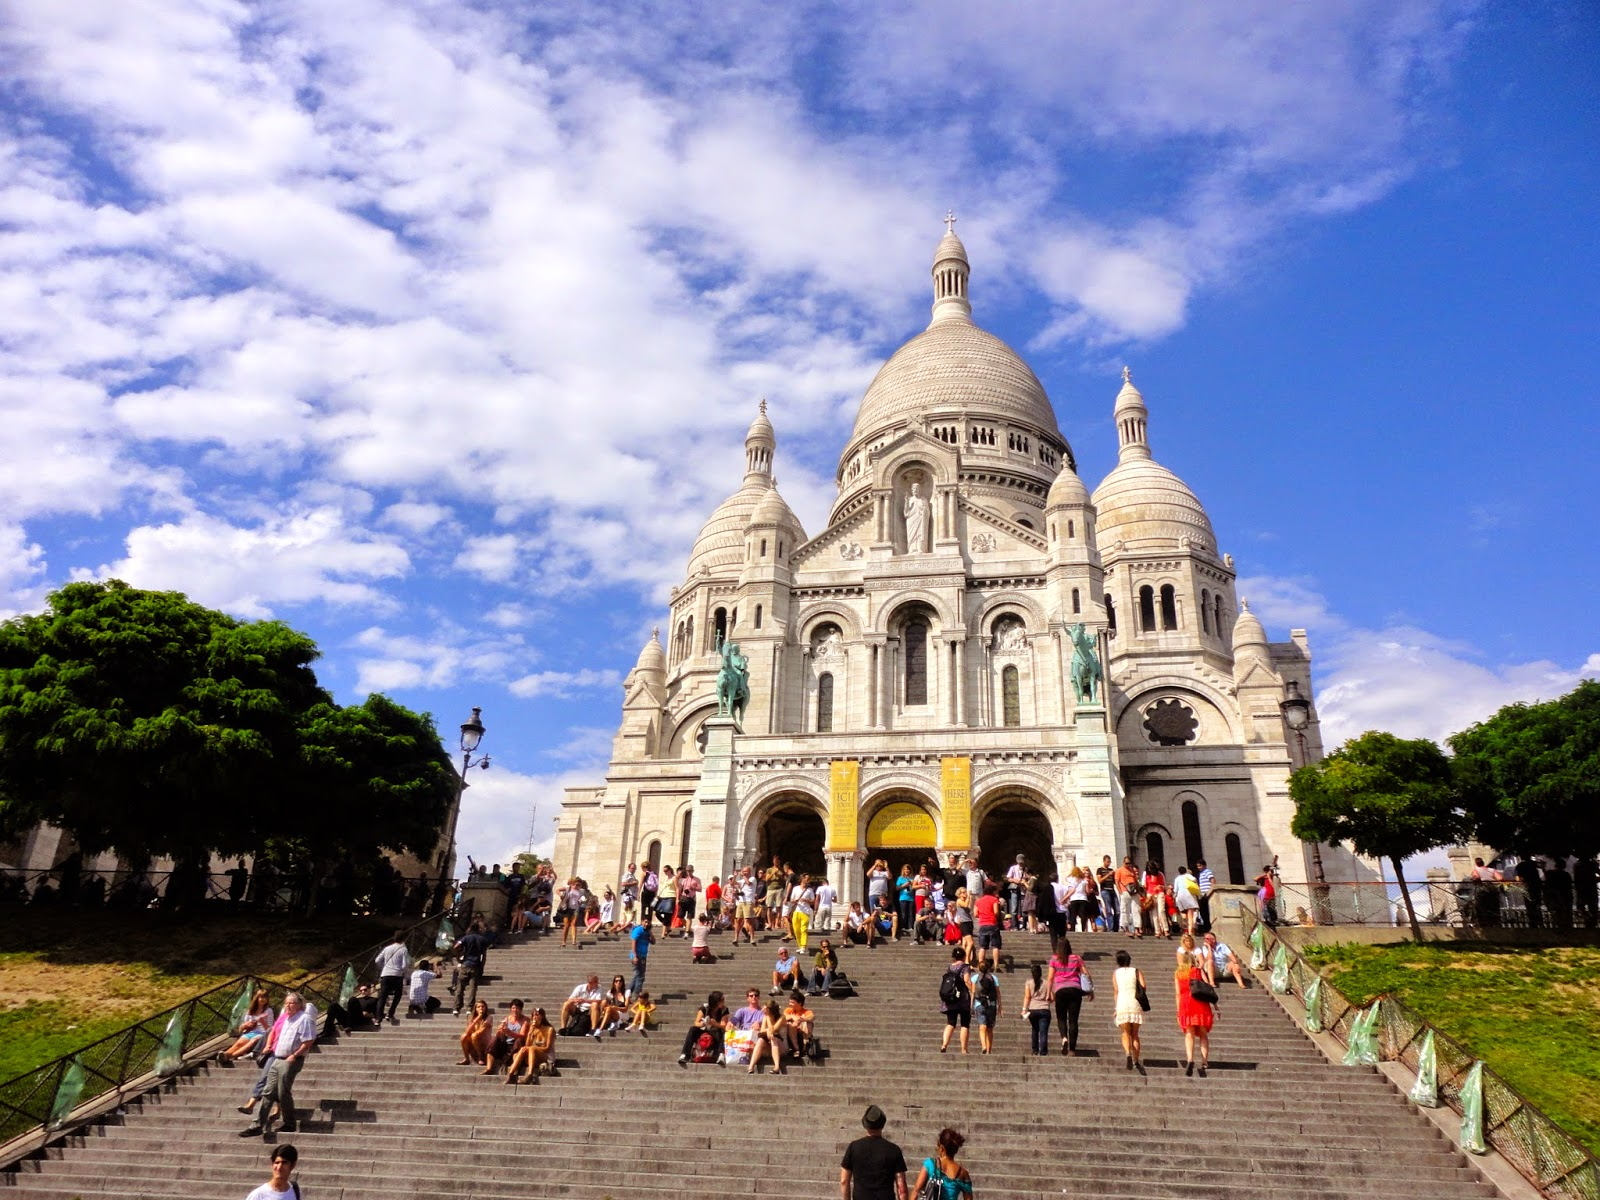 Sacre Coeur in Montmartre, Paris